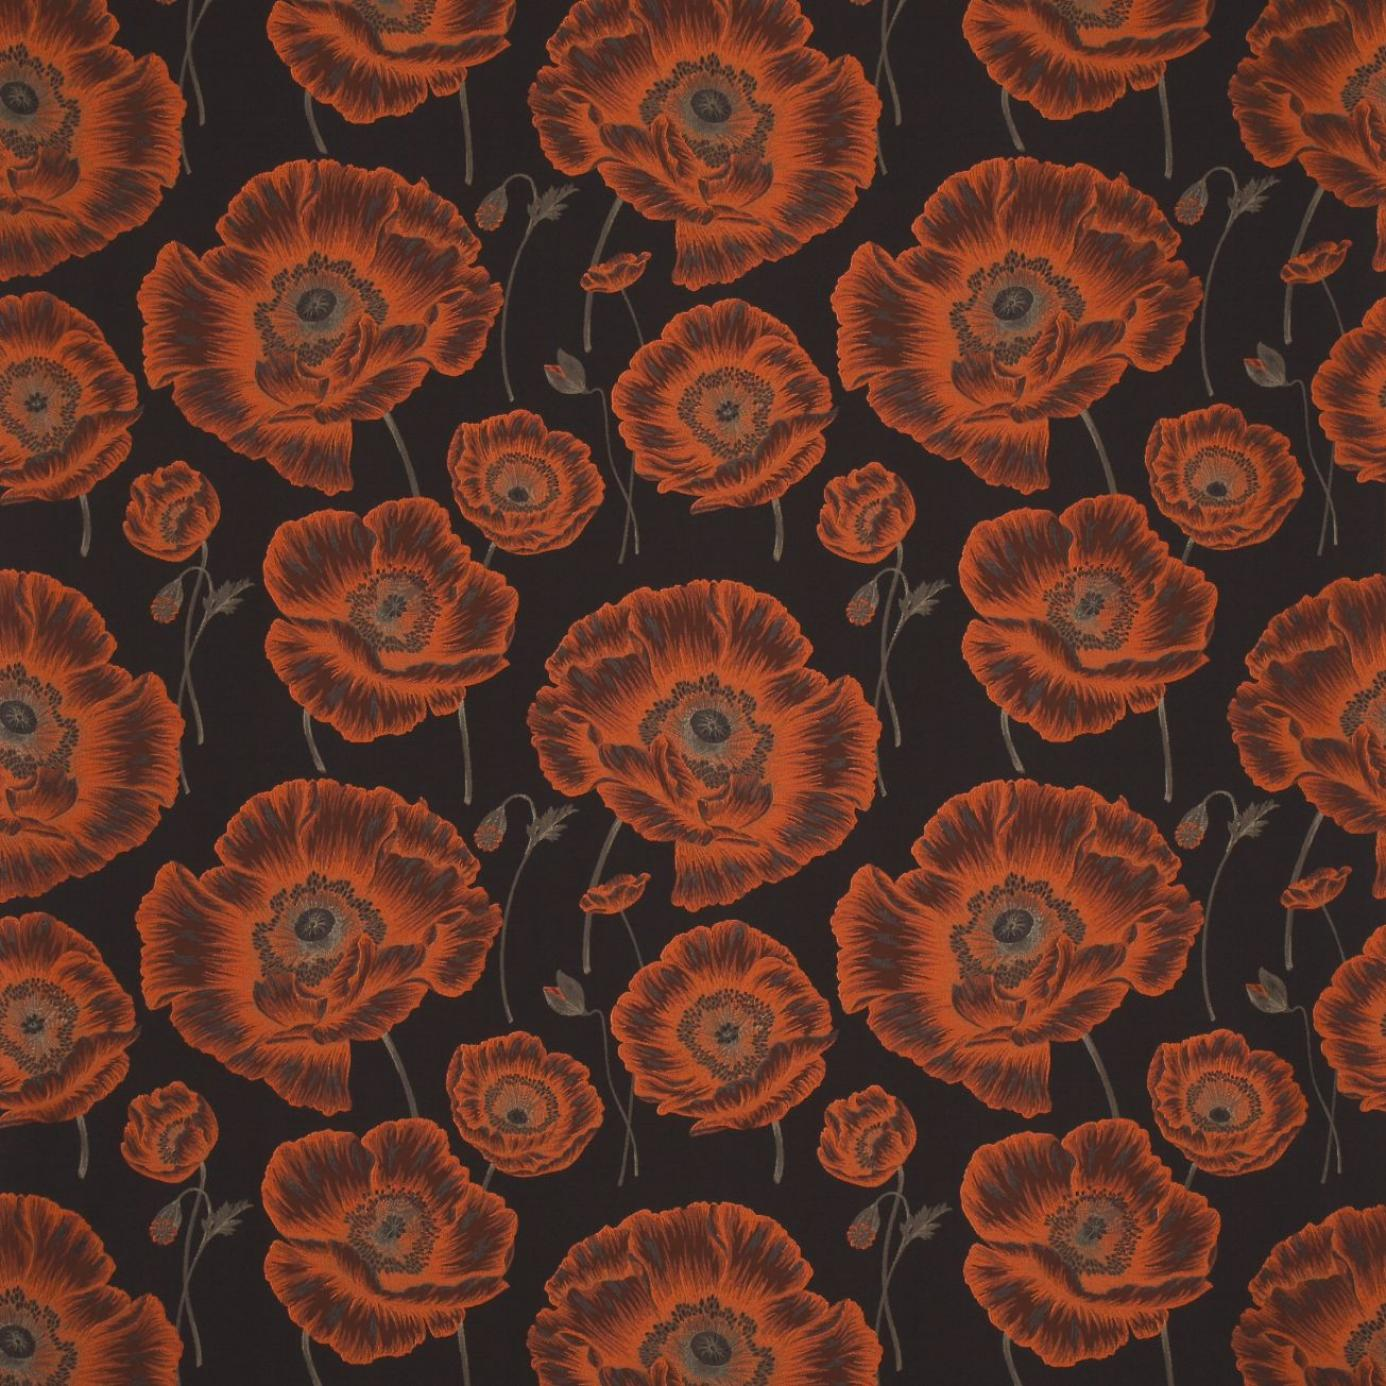 Curtains In Oriental Poppy Fabric Chocolate Orange Dorior302 Sanderson Oriental Poppy